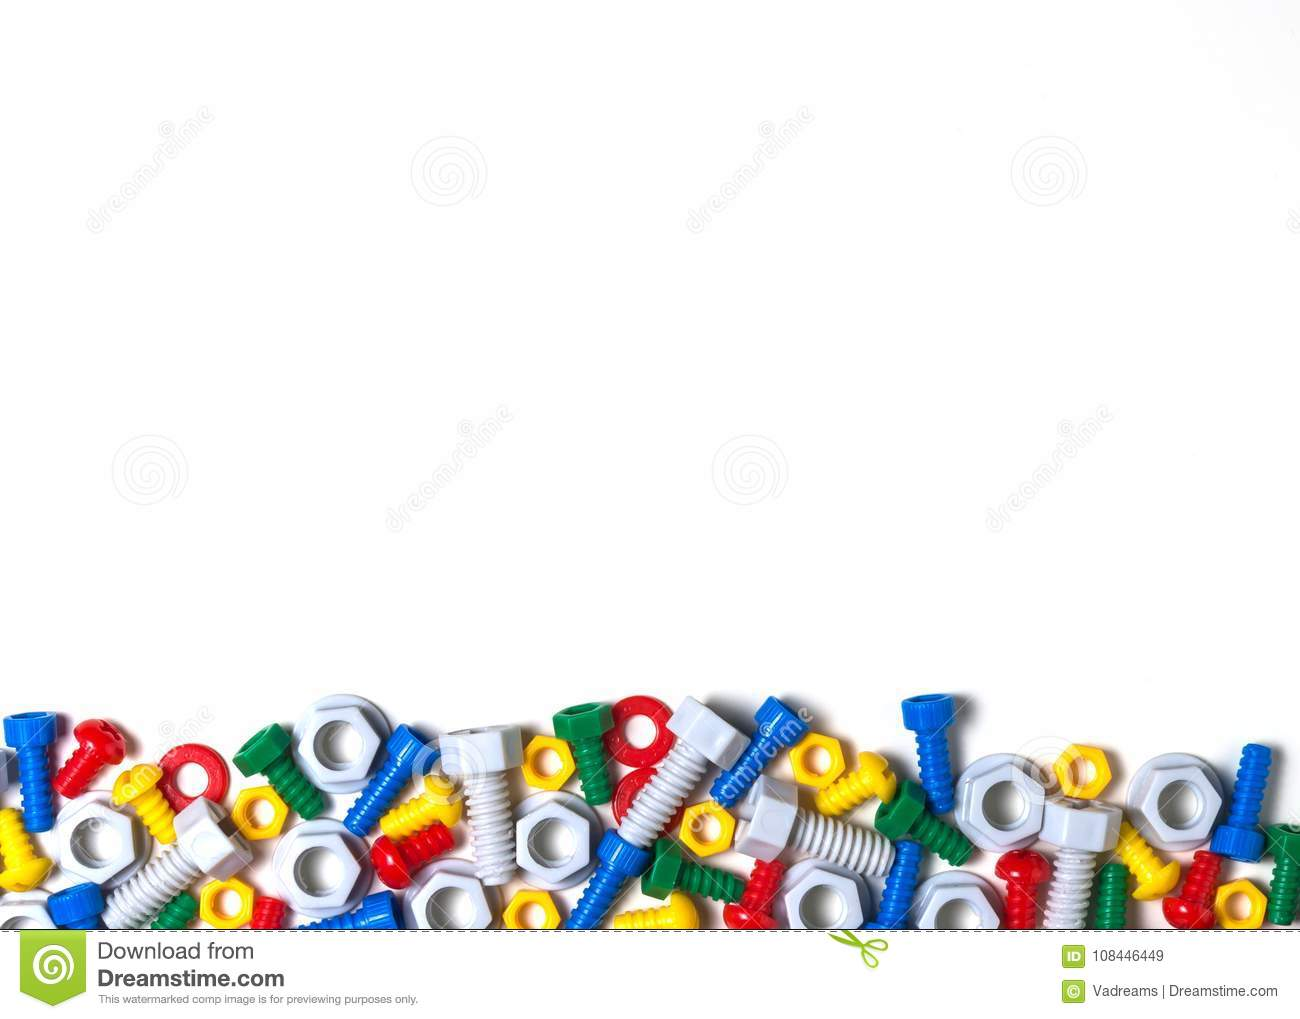 Colorful Kids Toys Background With Plastic Toy Bolts And Nuts Stock